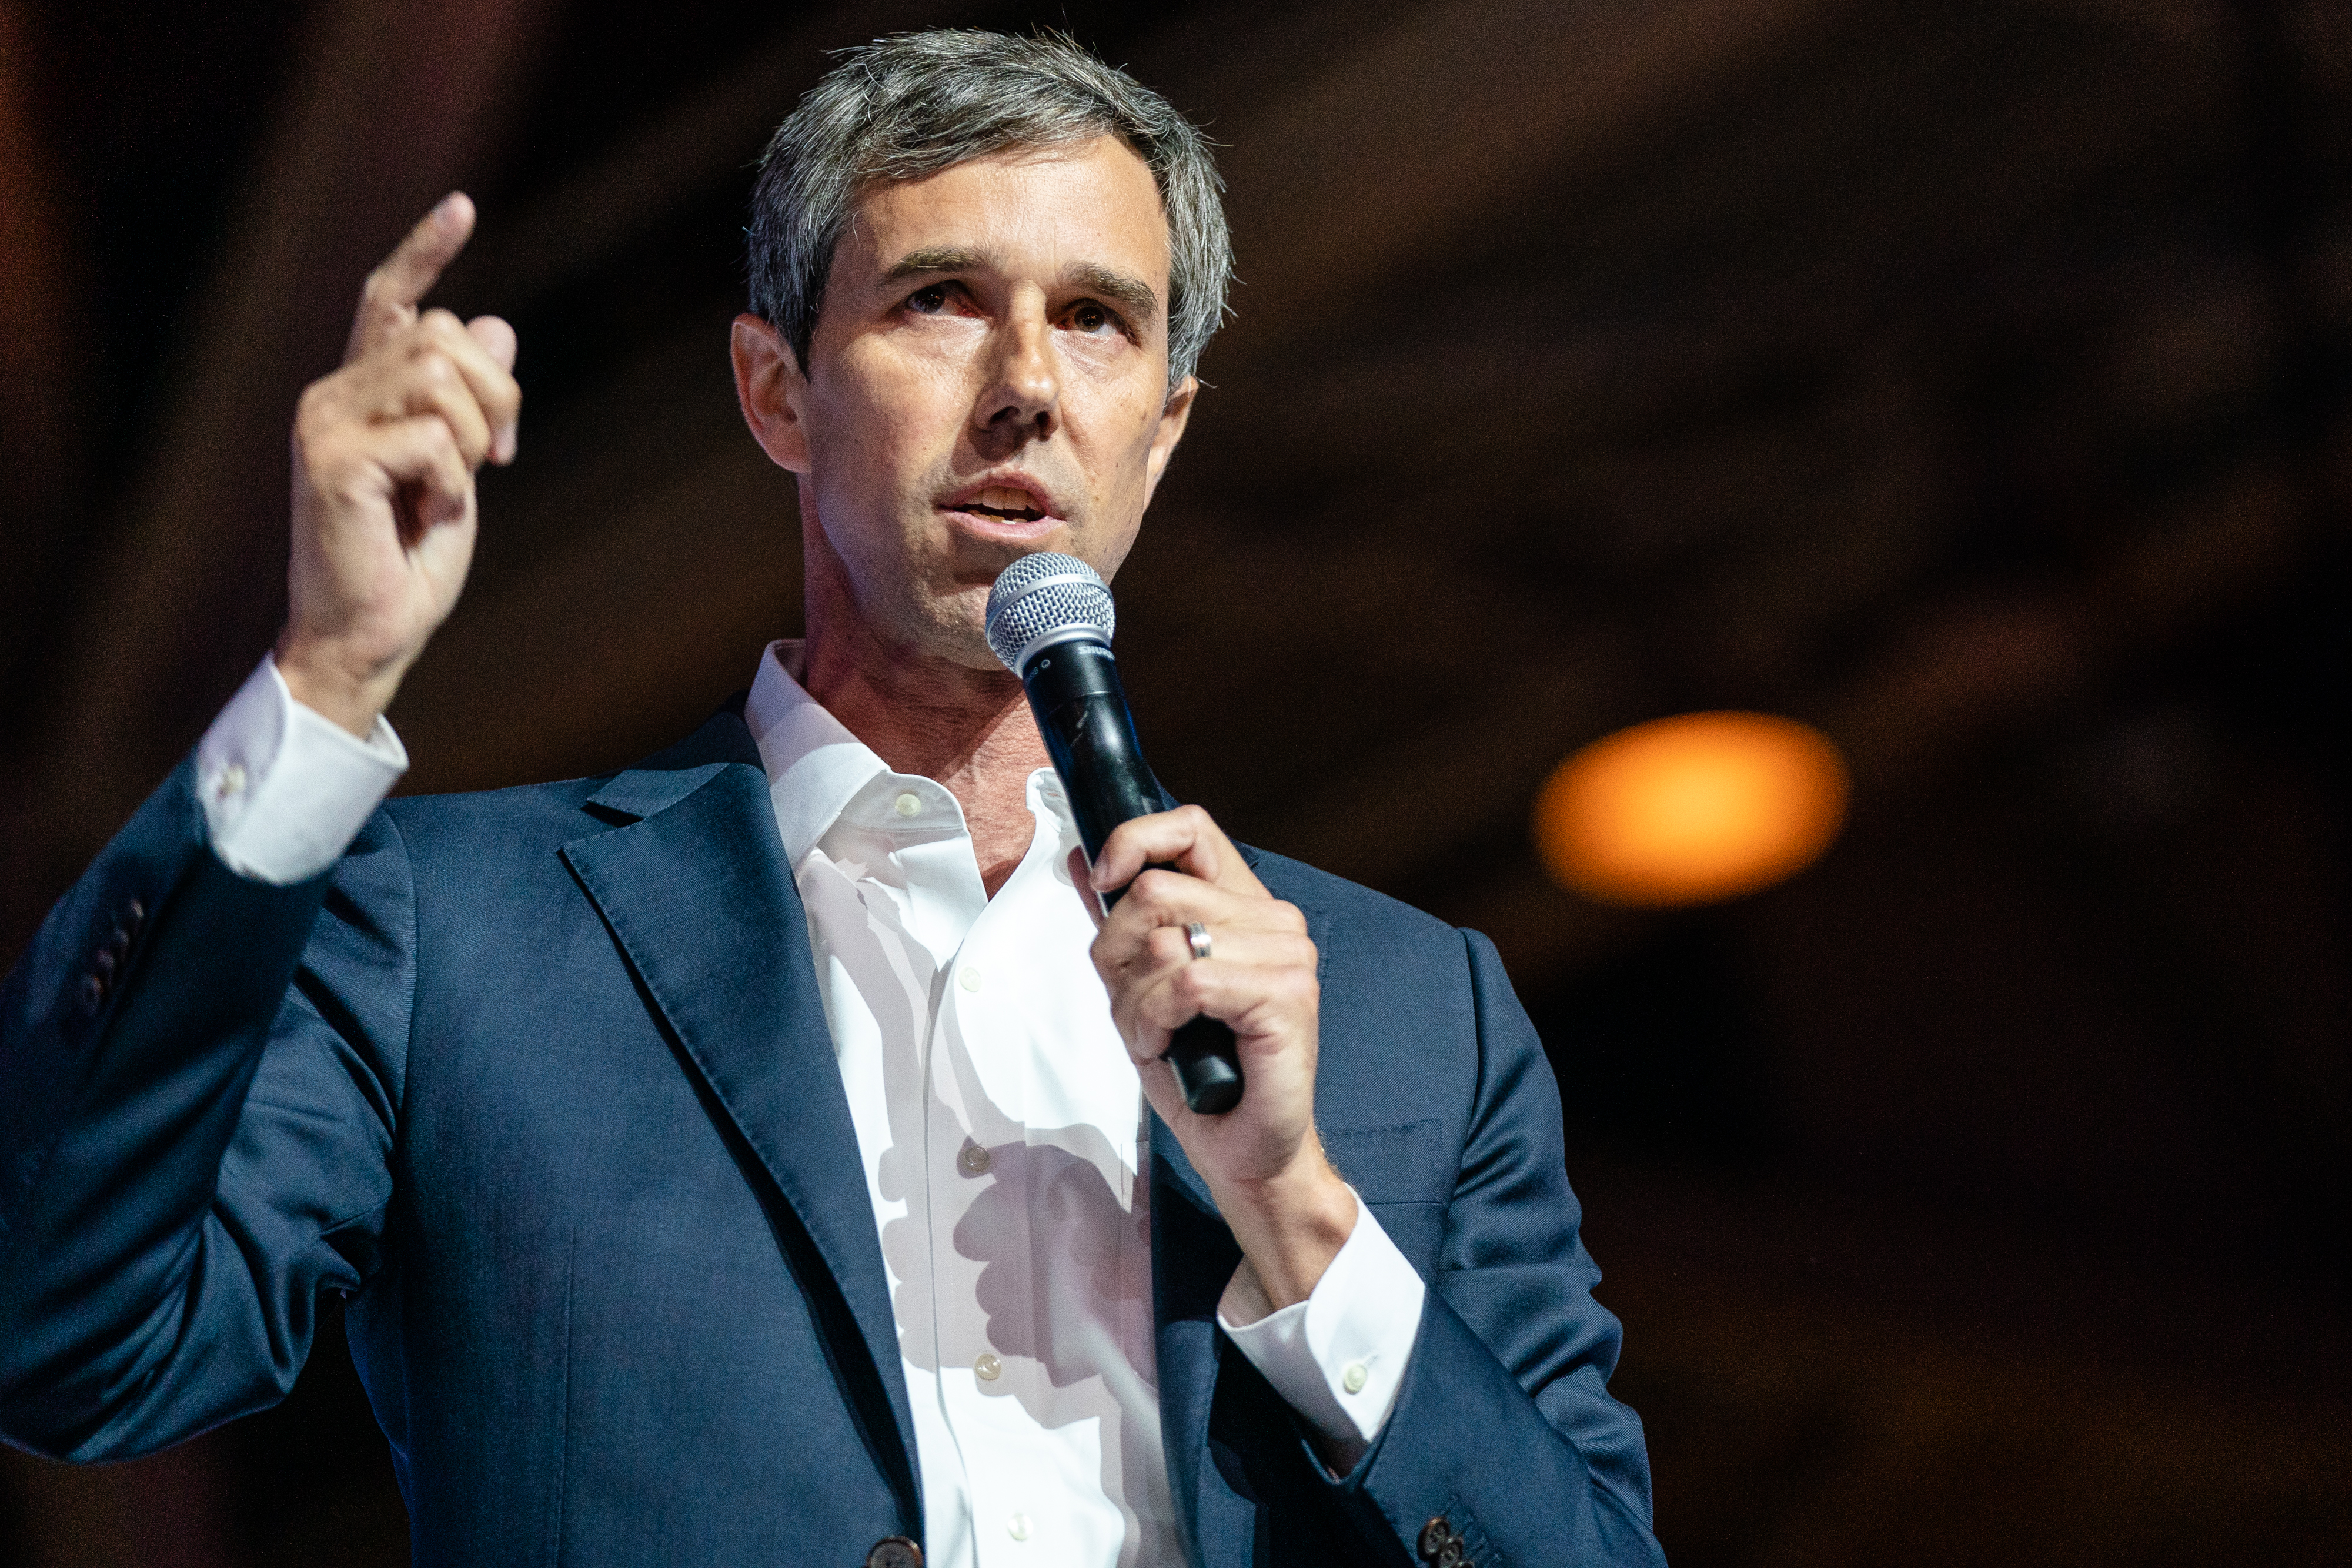 Beto O'Rourke speaks at the 25th Essence Festival at Ernest N. Morial Convention Center on July 06, 2019 in New Orleans, Louisiana.